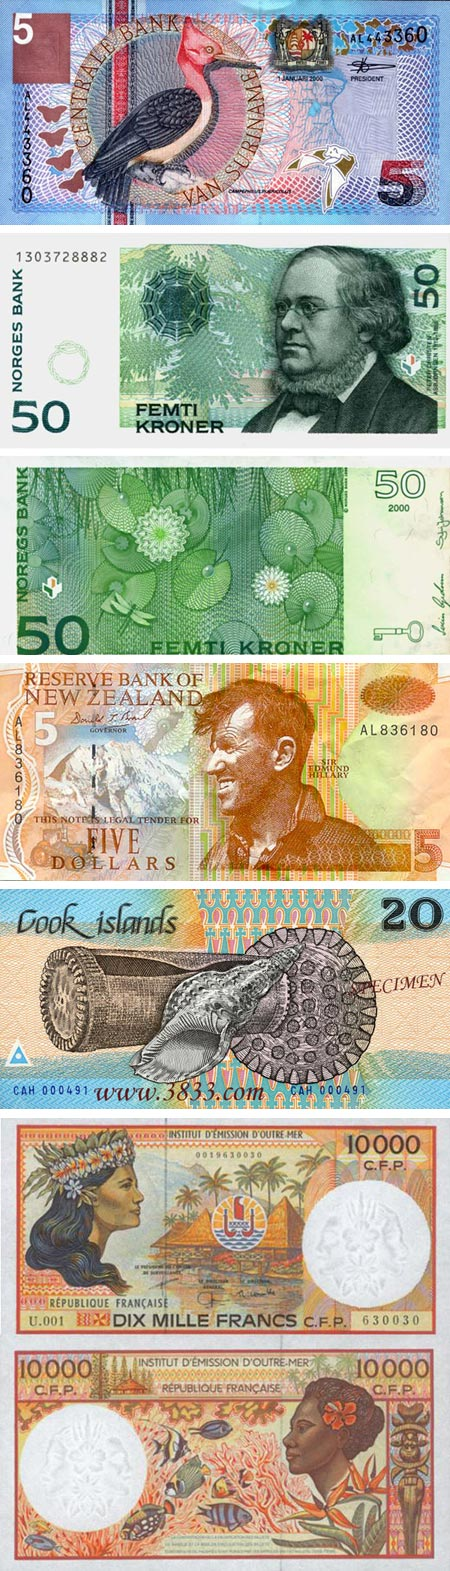 The Art of Currency